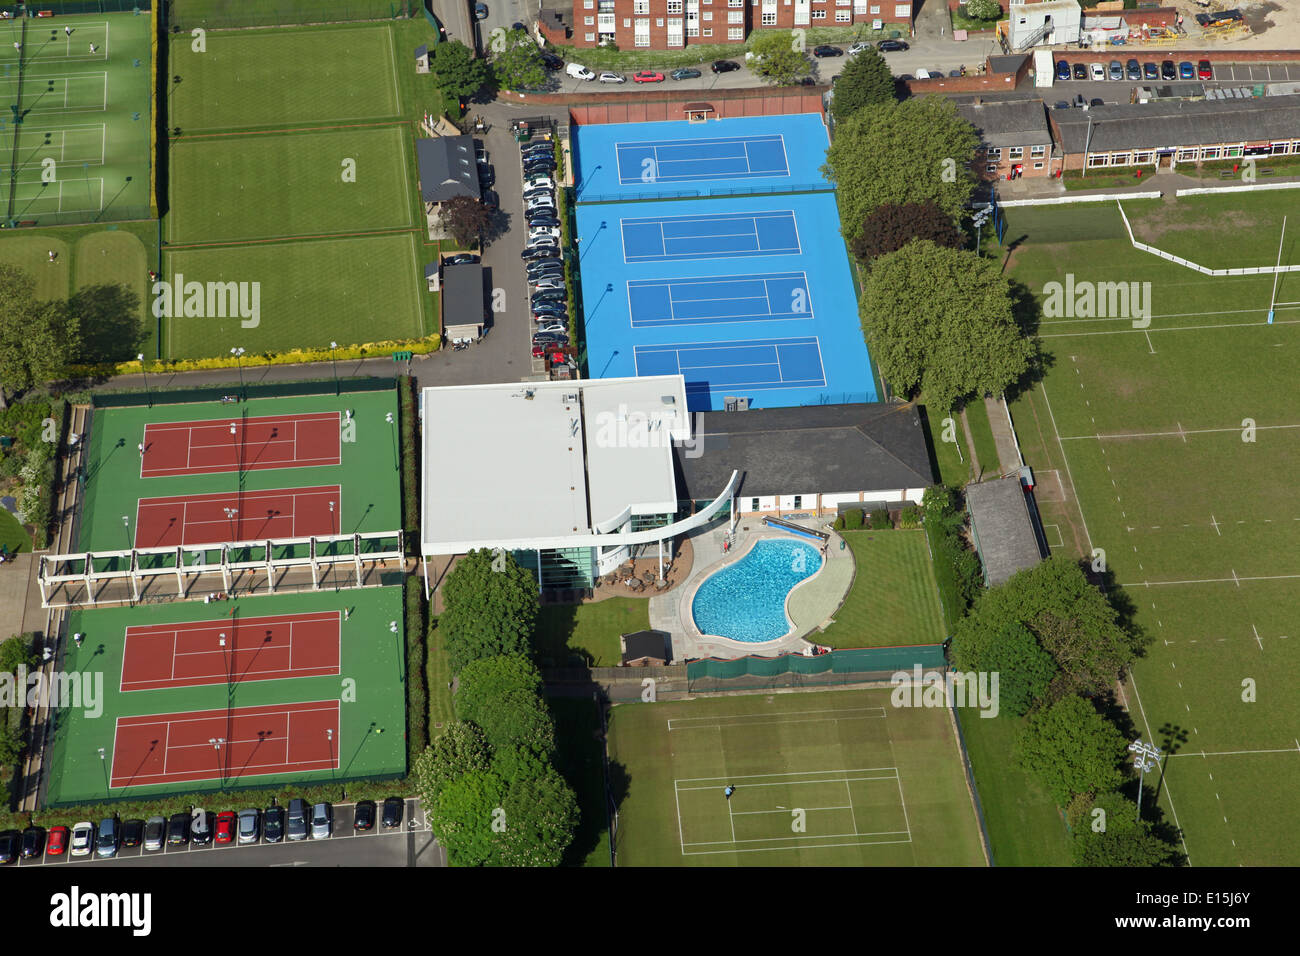 aerial view of The Roehampton Club, a exclusive sports club in Roehampton London - Stock Image